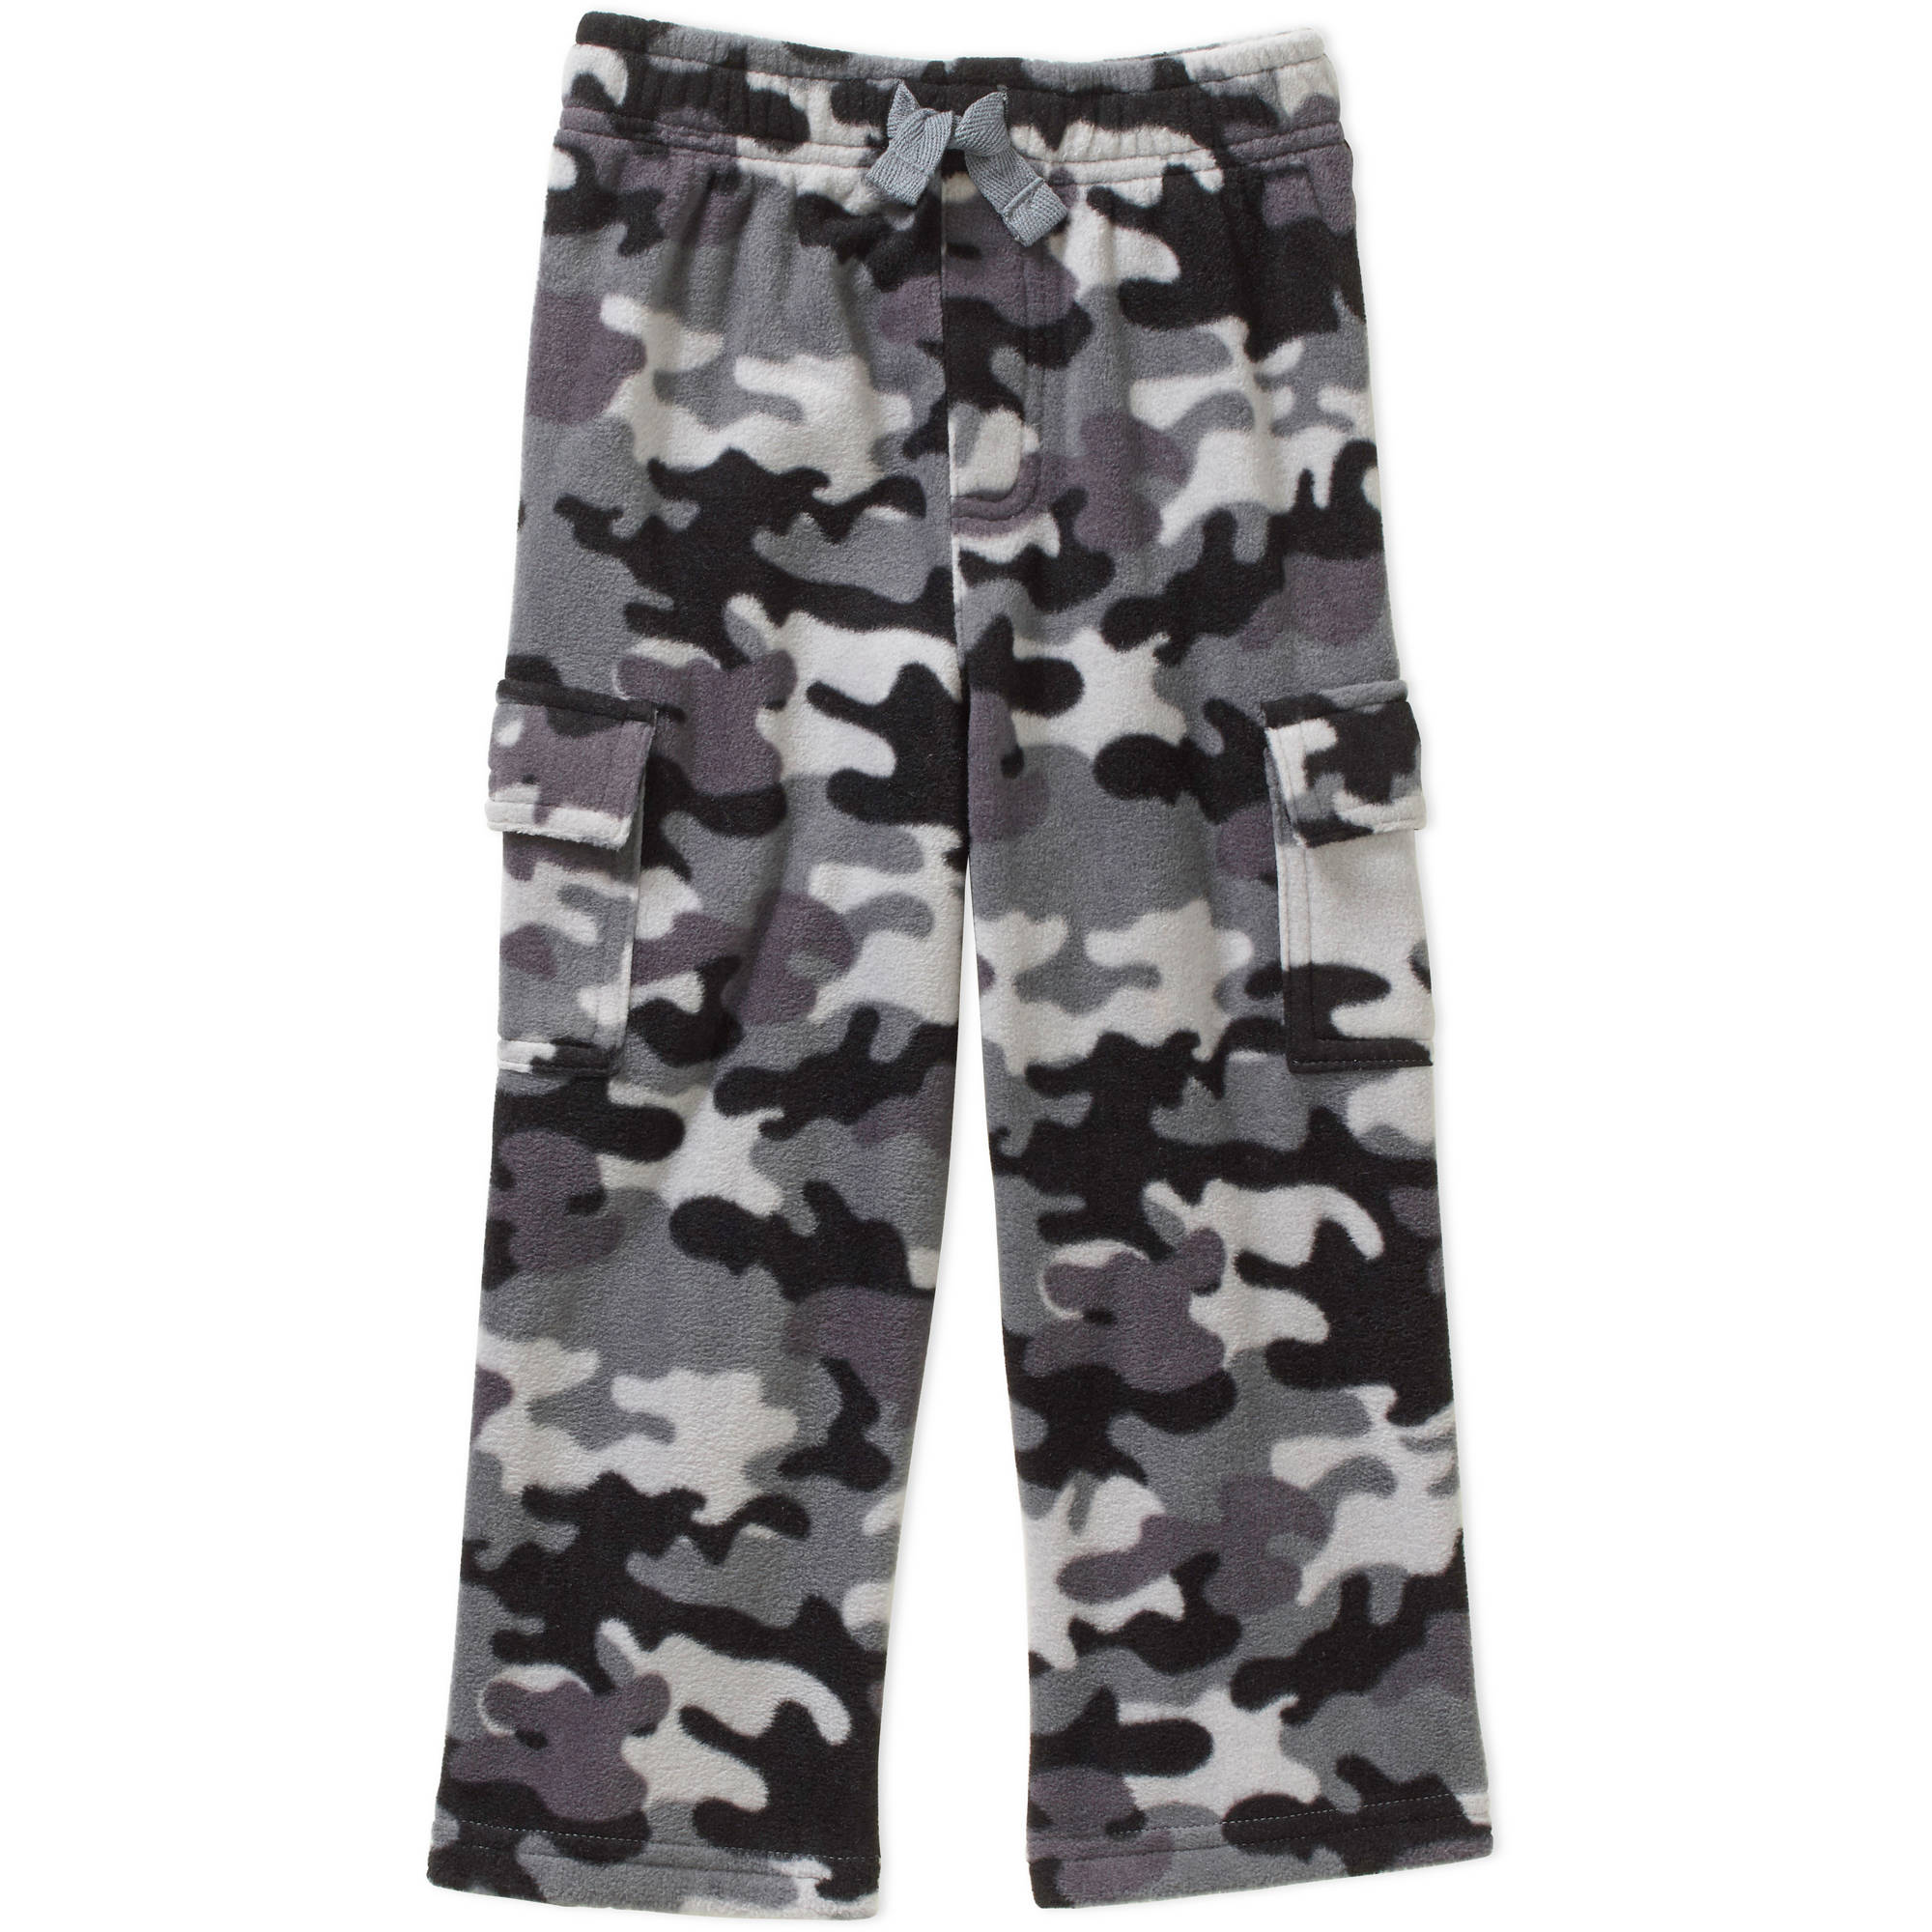 Garanimals Baby Toddler Boy Printed Micro Fleece Pants